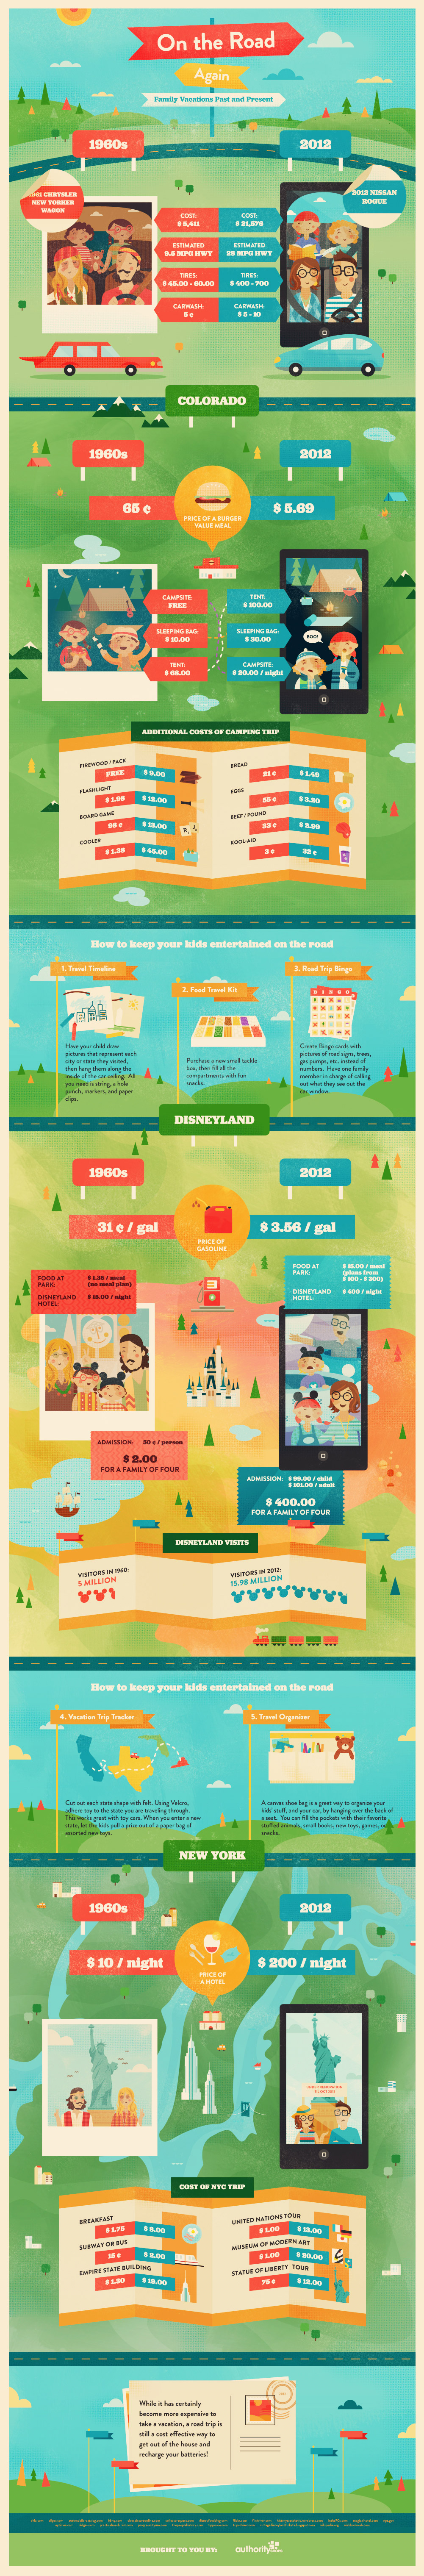 Family-Vacations-Past-and-Present-infographic